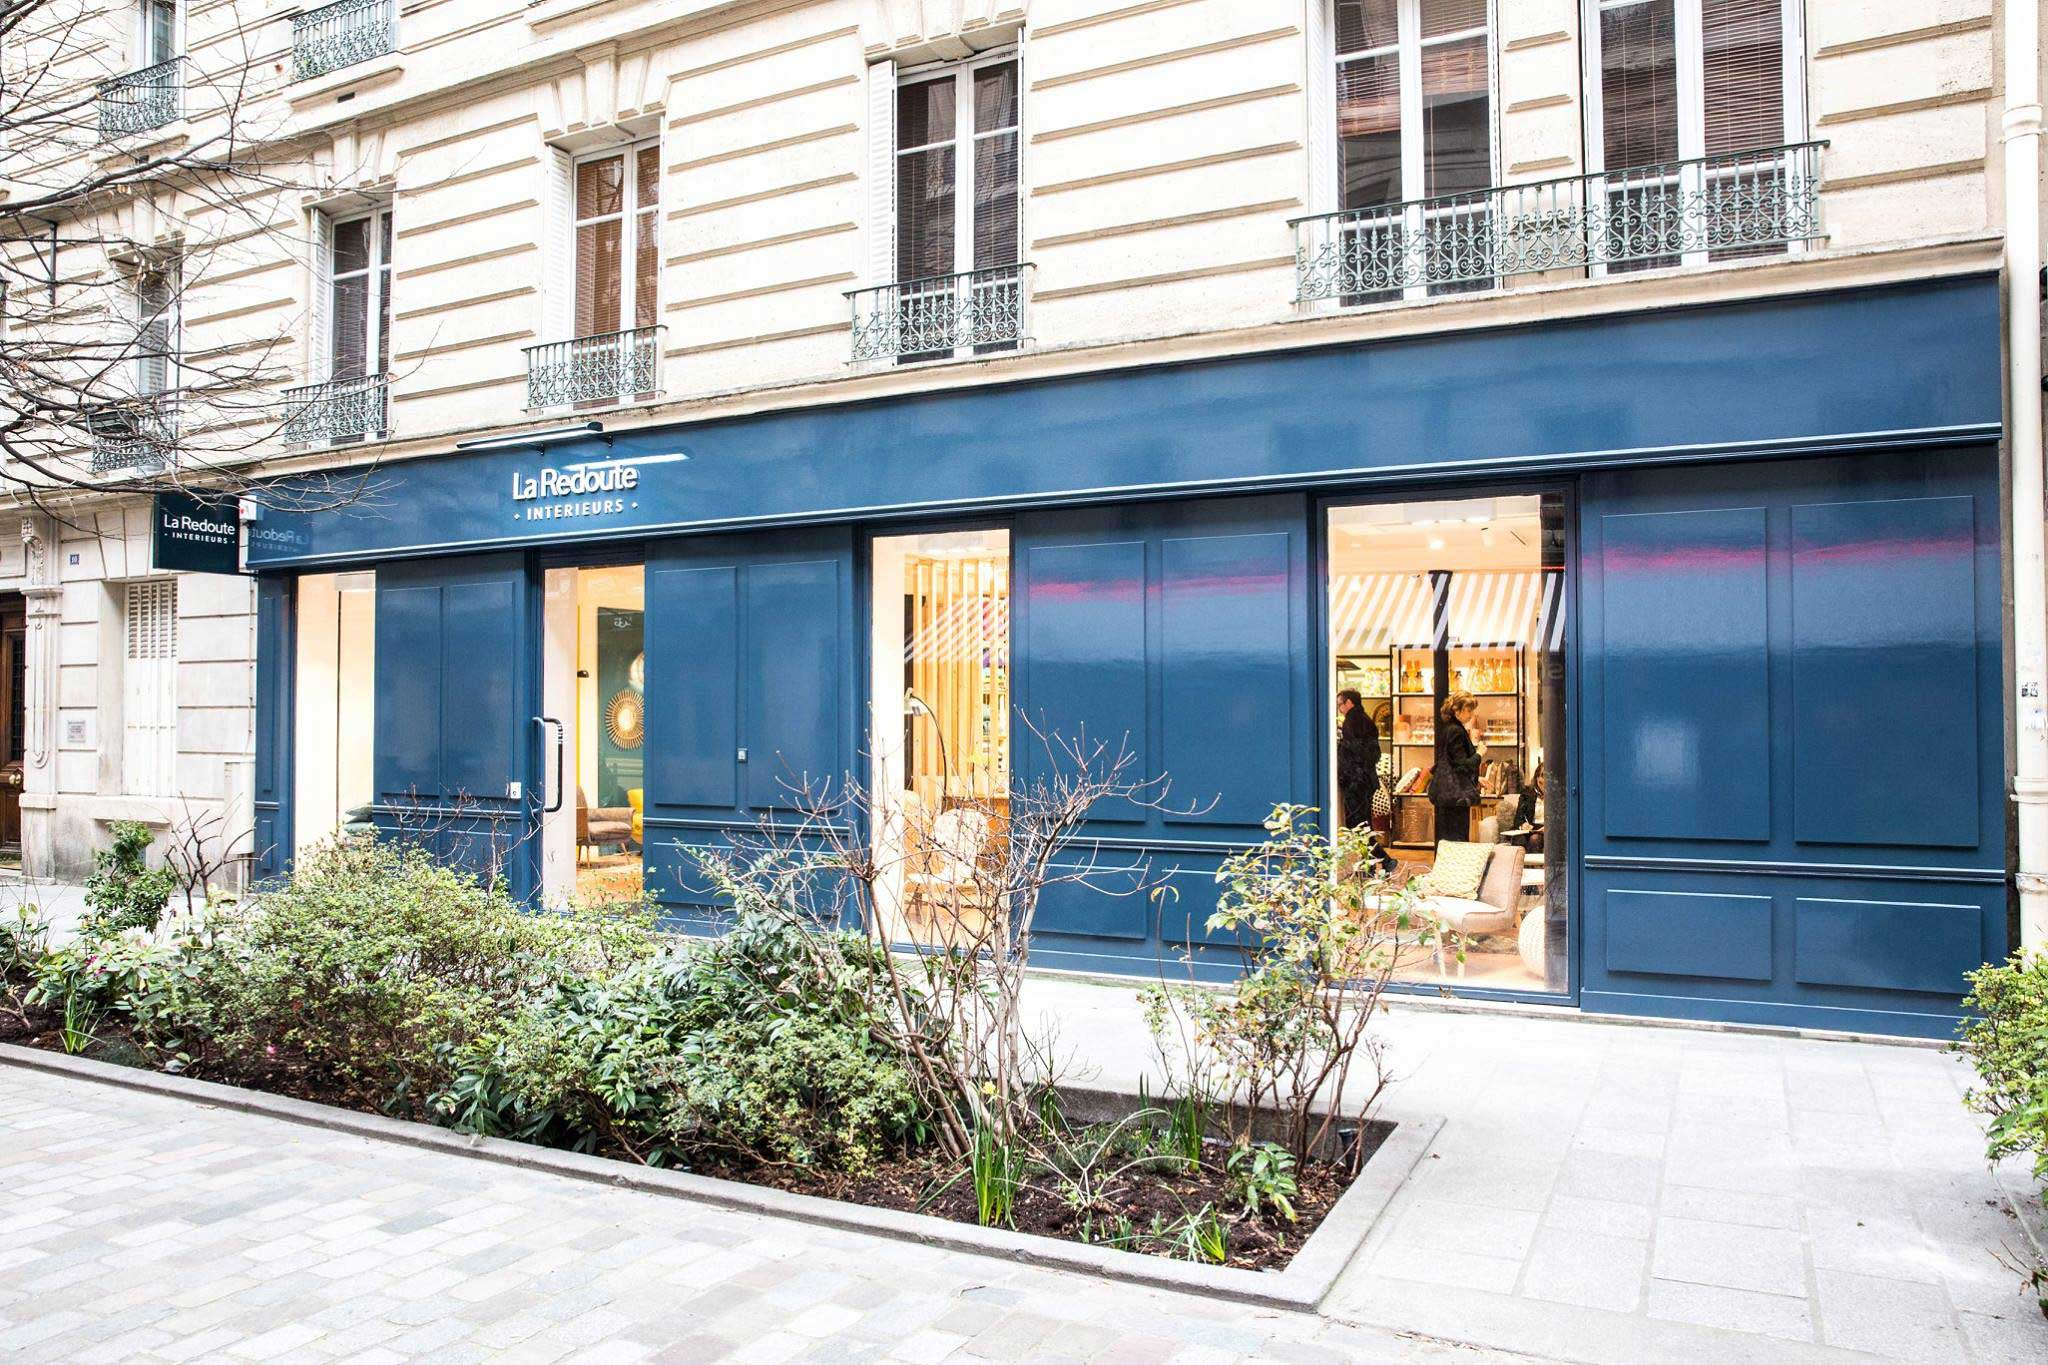 Magasin la redoute int rieurs paris - La redoute paris boutique ...